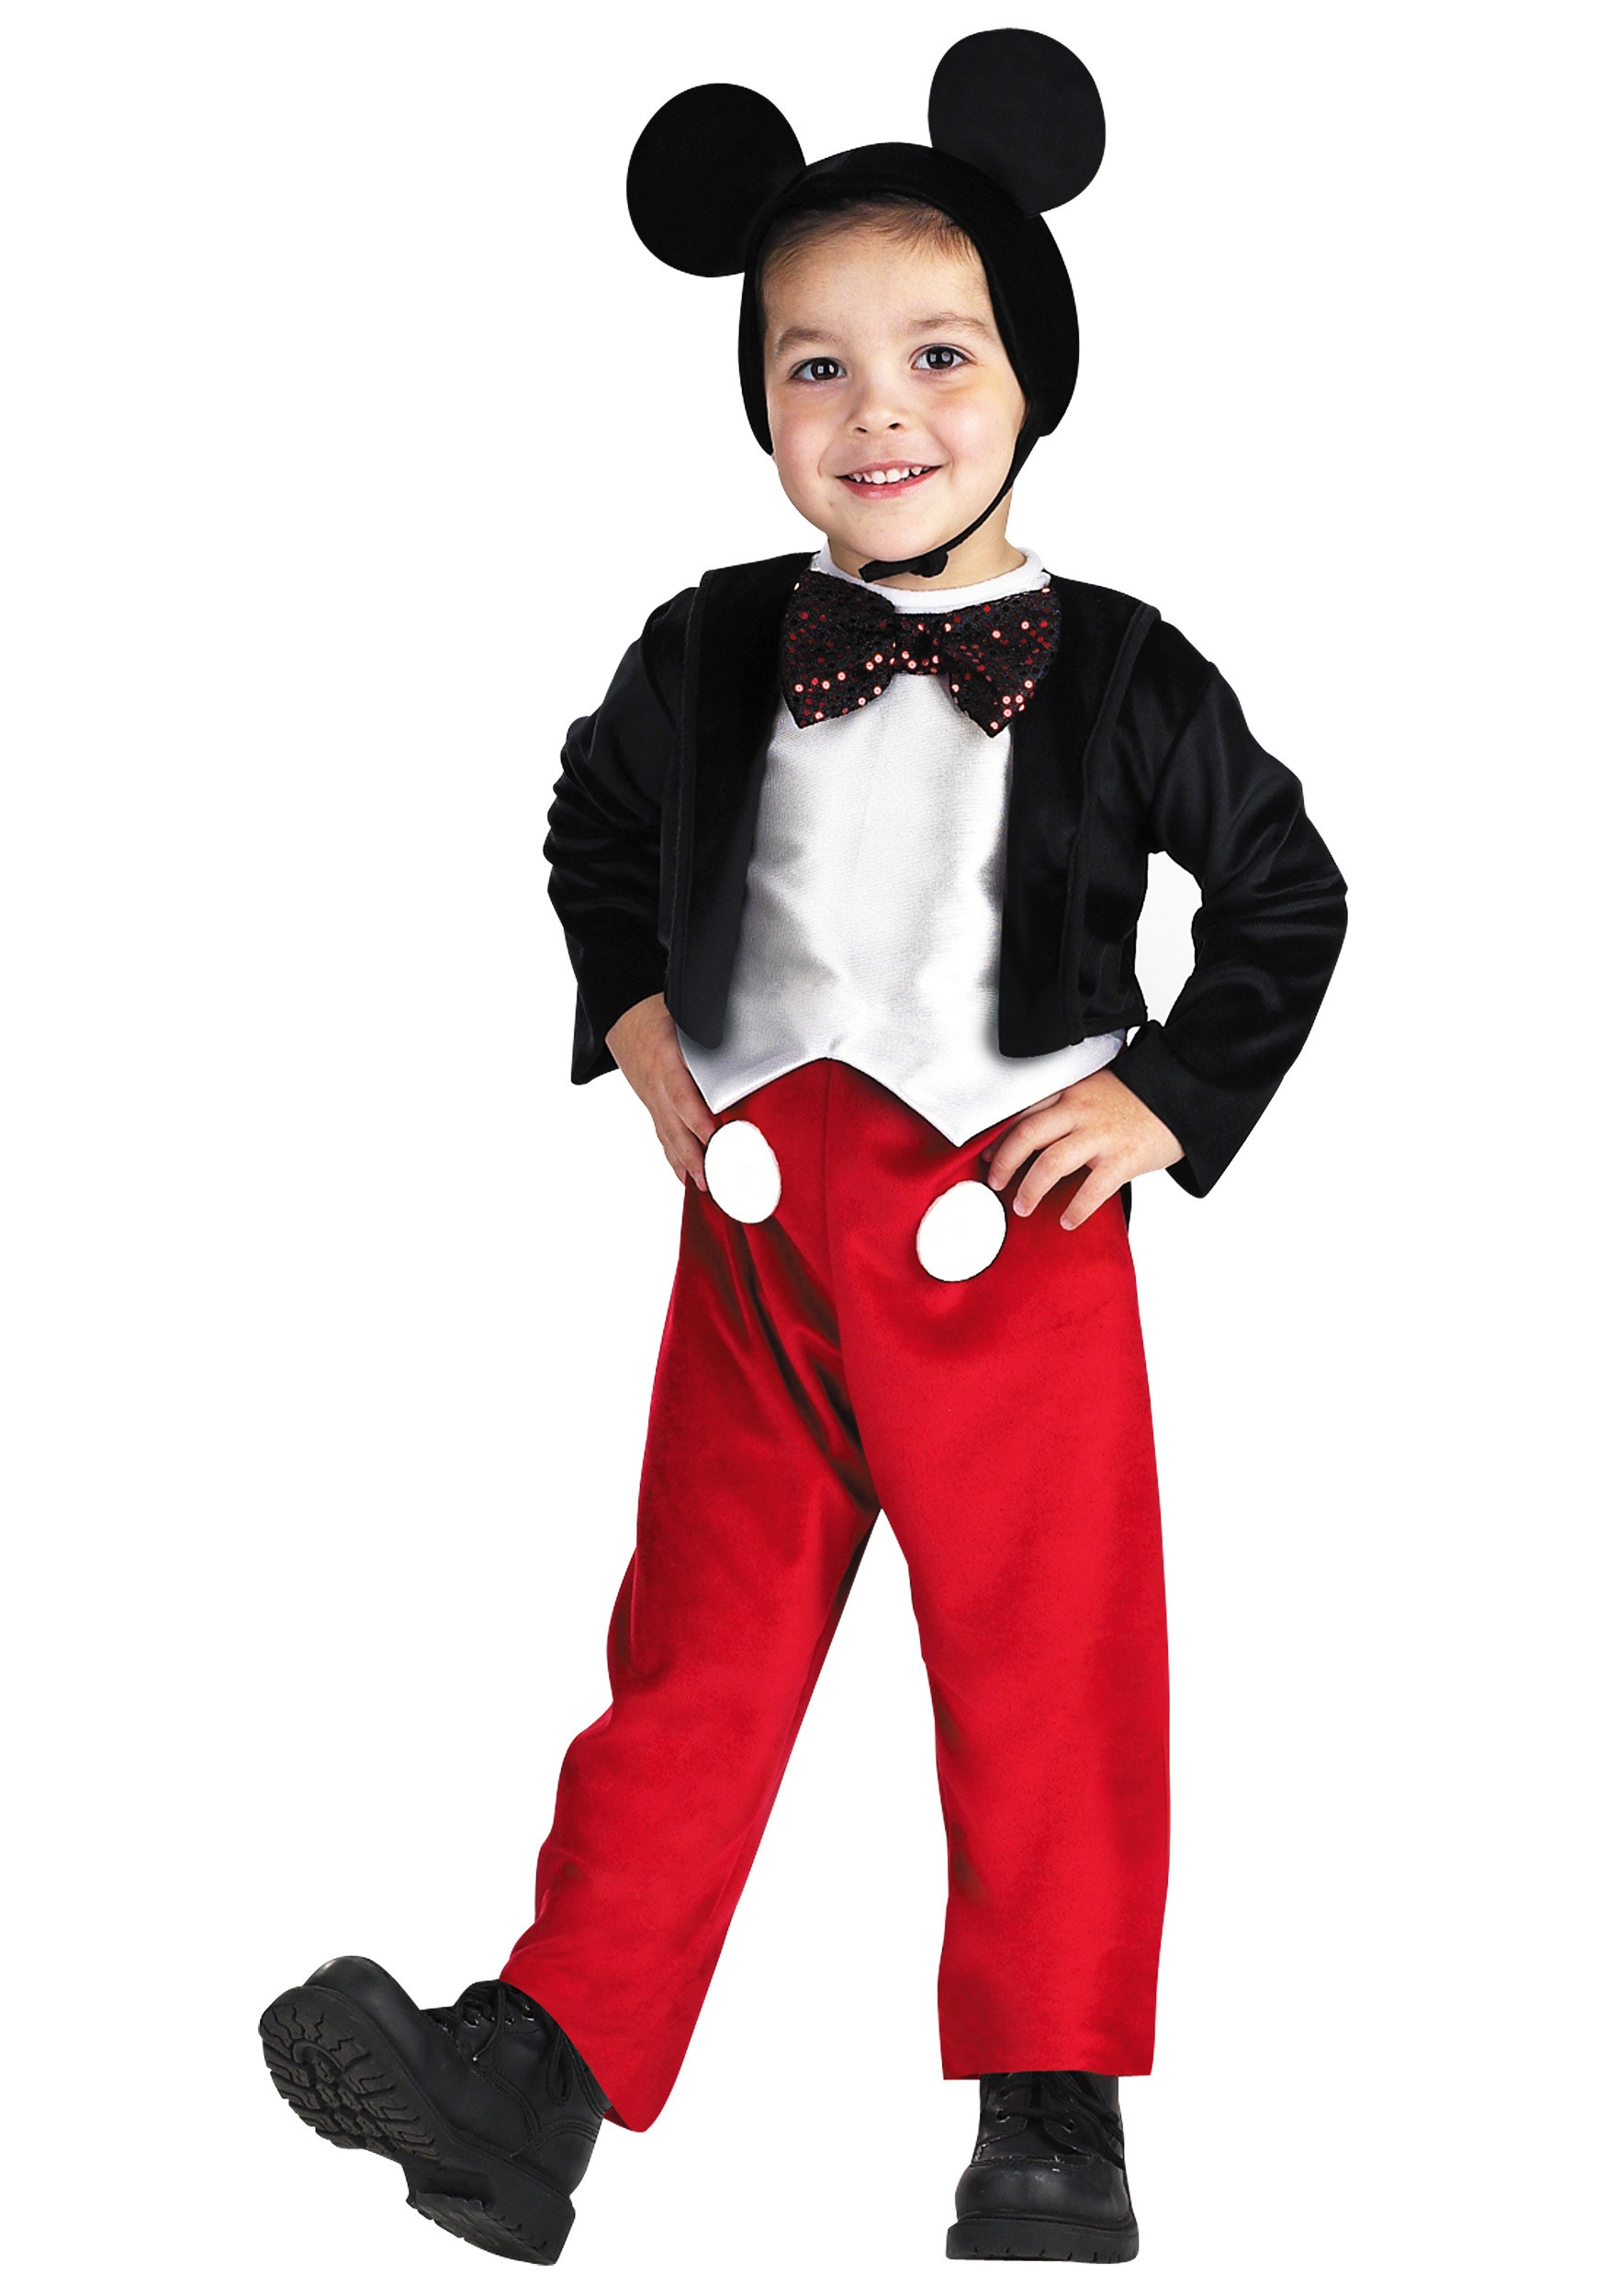 Mickey Mouse Costume DIY  Deluxe Kids Mickey Mouse Costume Mickey Mouse Costumes